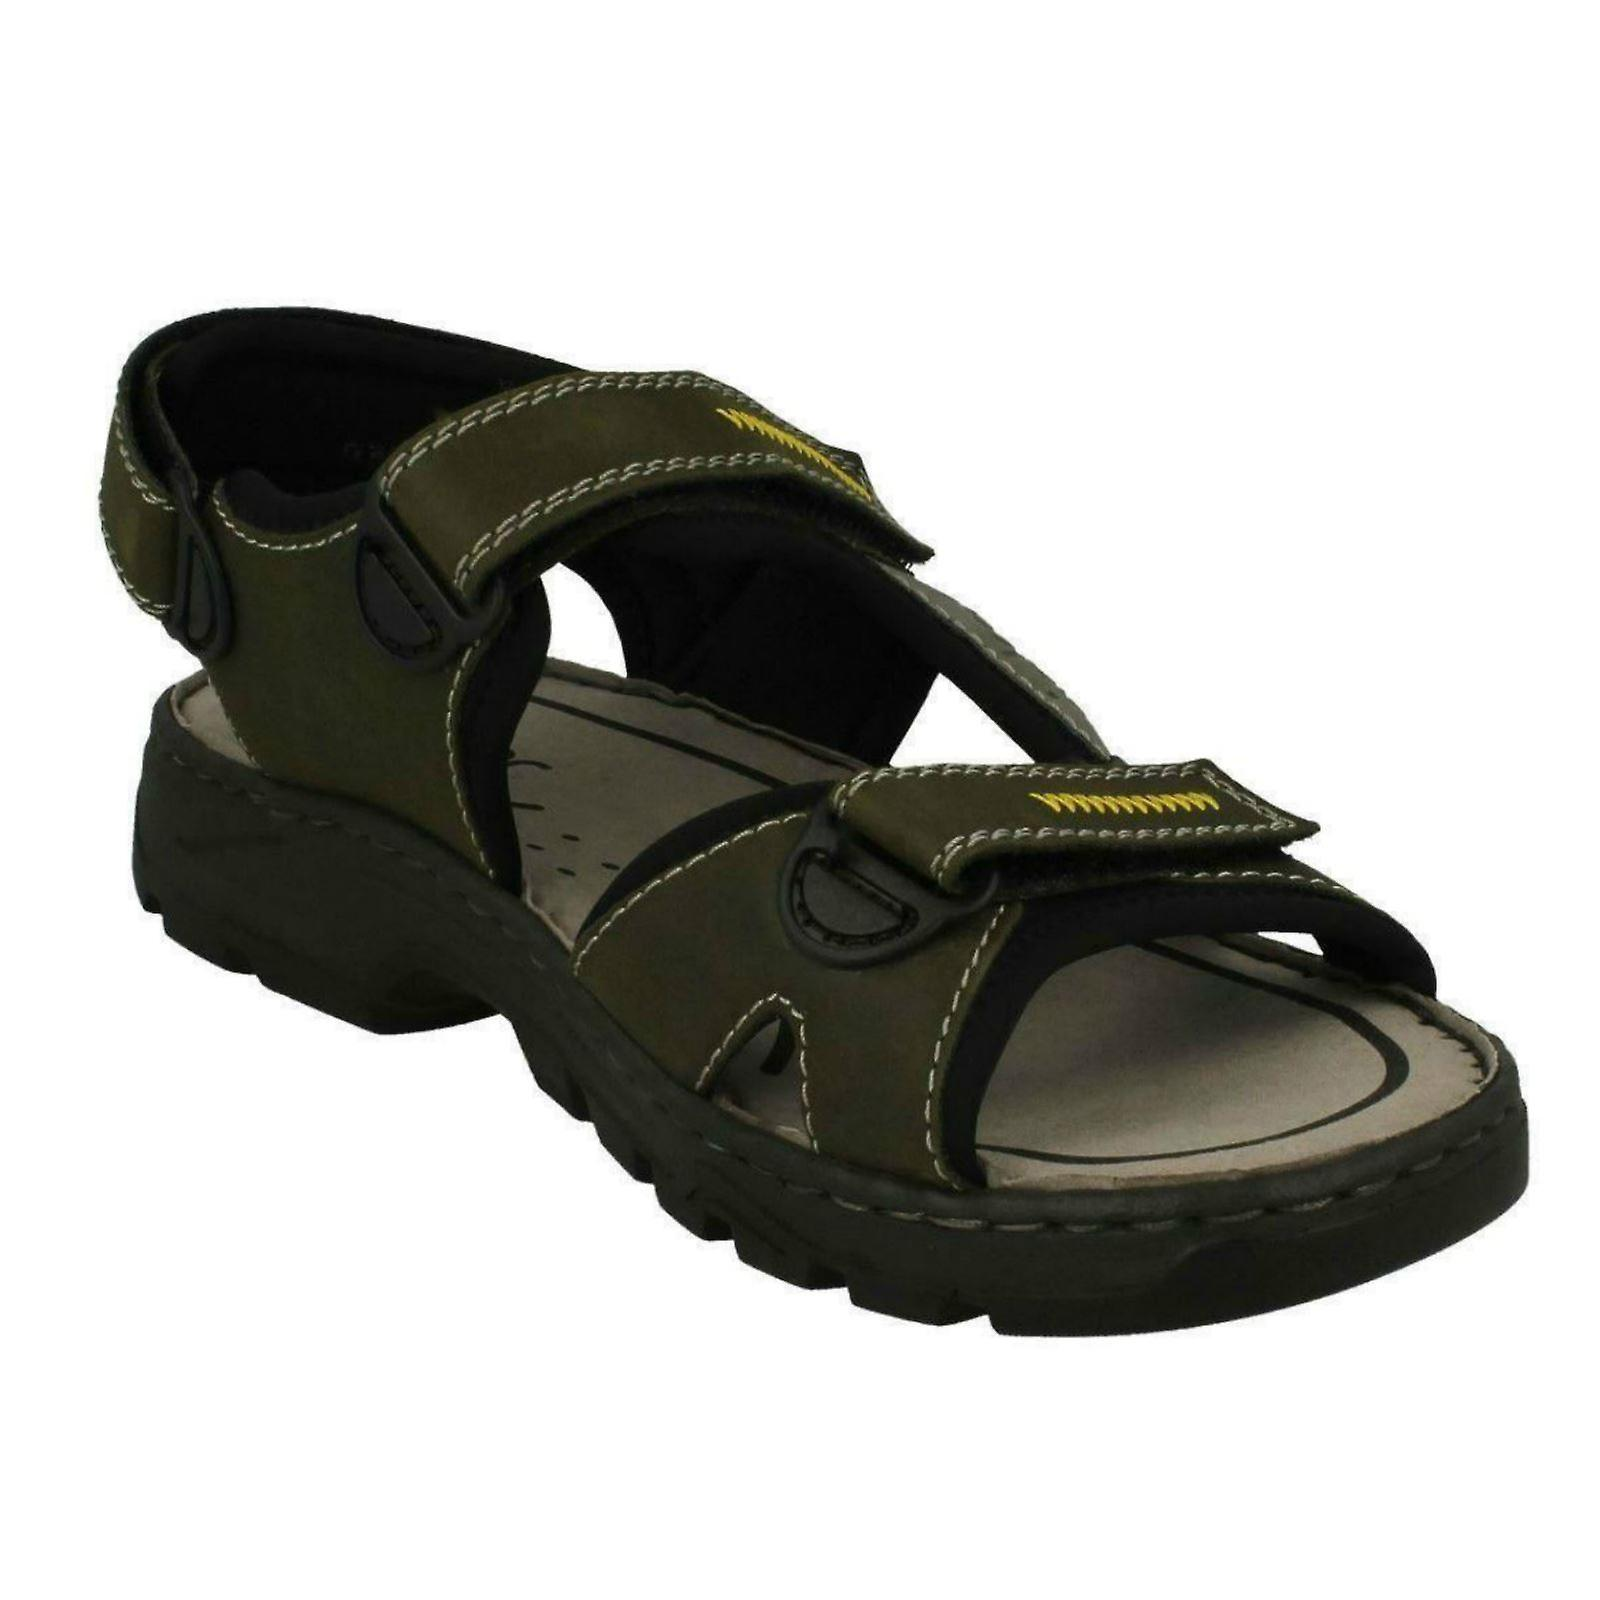 info for 728aa 13c0c Mens Rieker Casual Strapped Sandals 26157-54 - Green Combi Synthetic - UK  Size 9.5 - EU Size 44 - US Size 10.5